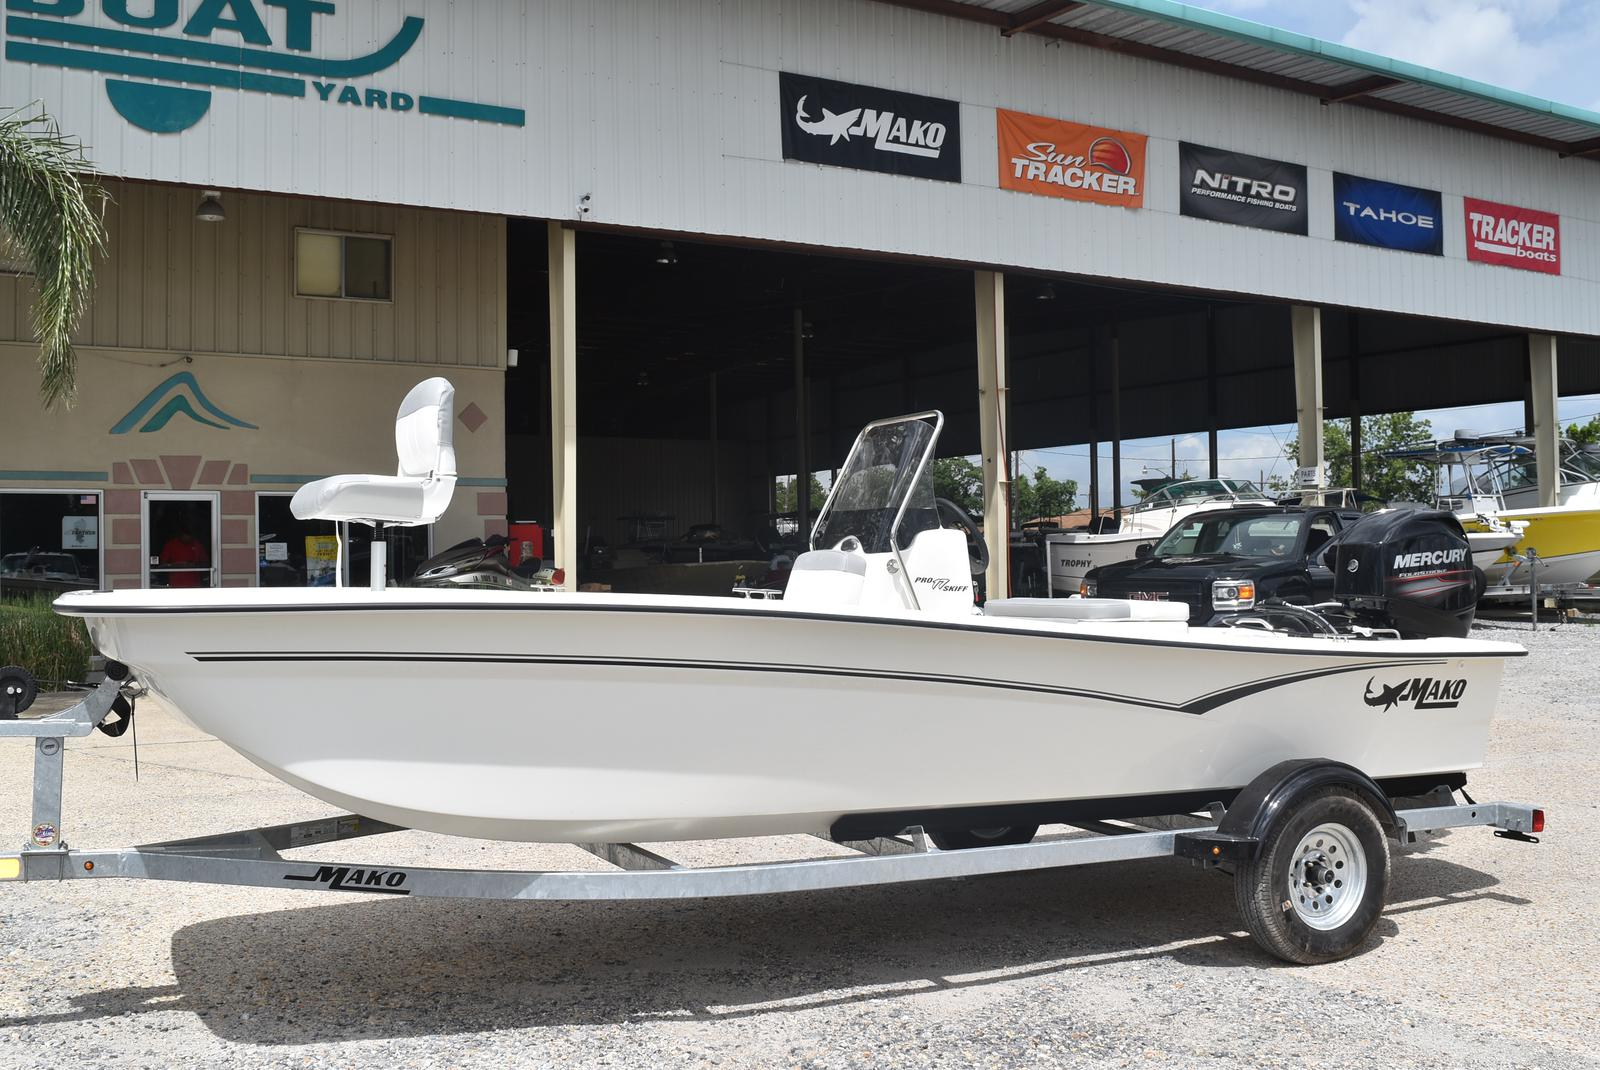 2020 Mako boat for sale, model of the boat is Pro Skiff 17, 75 ELPT & Image # 96 of 702